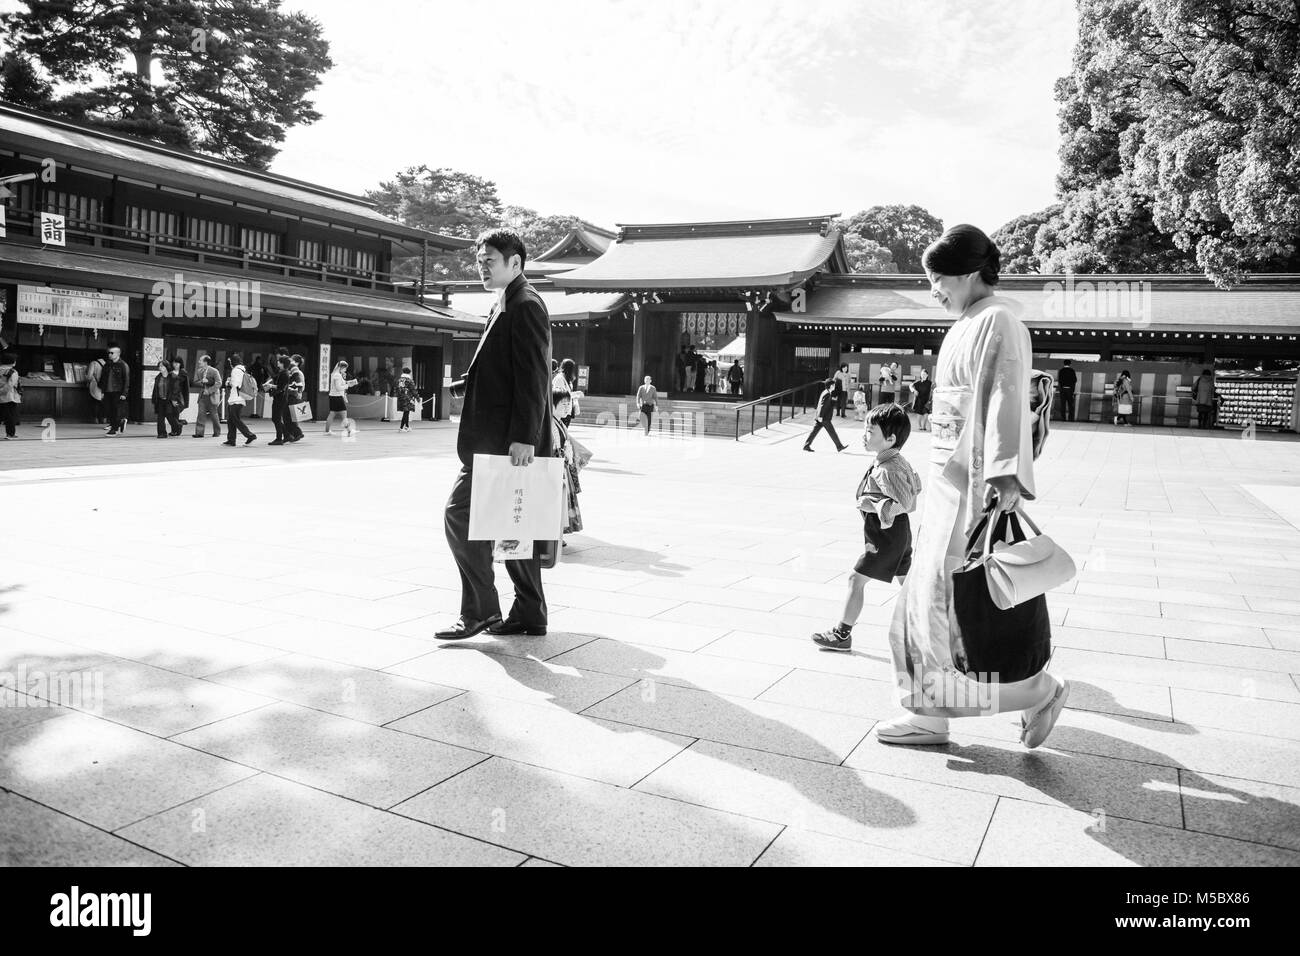 A family walks through the grounds of Meiji Jingu Shrine during the Grand Autumn Festival - Stock Image